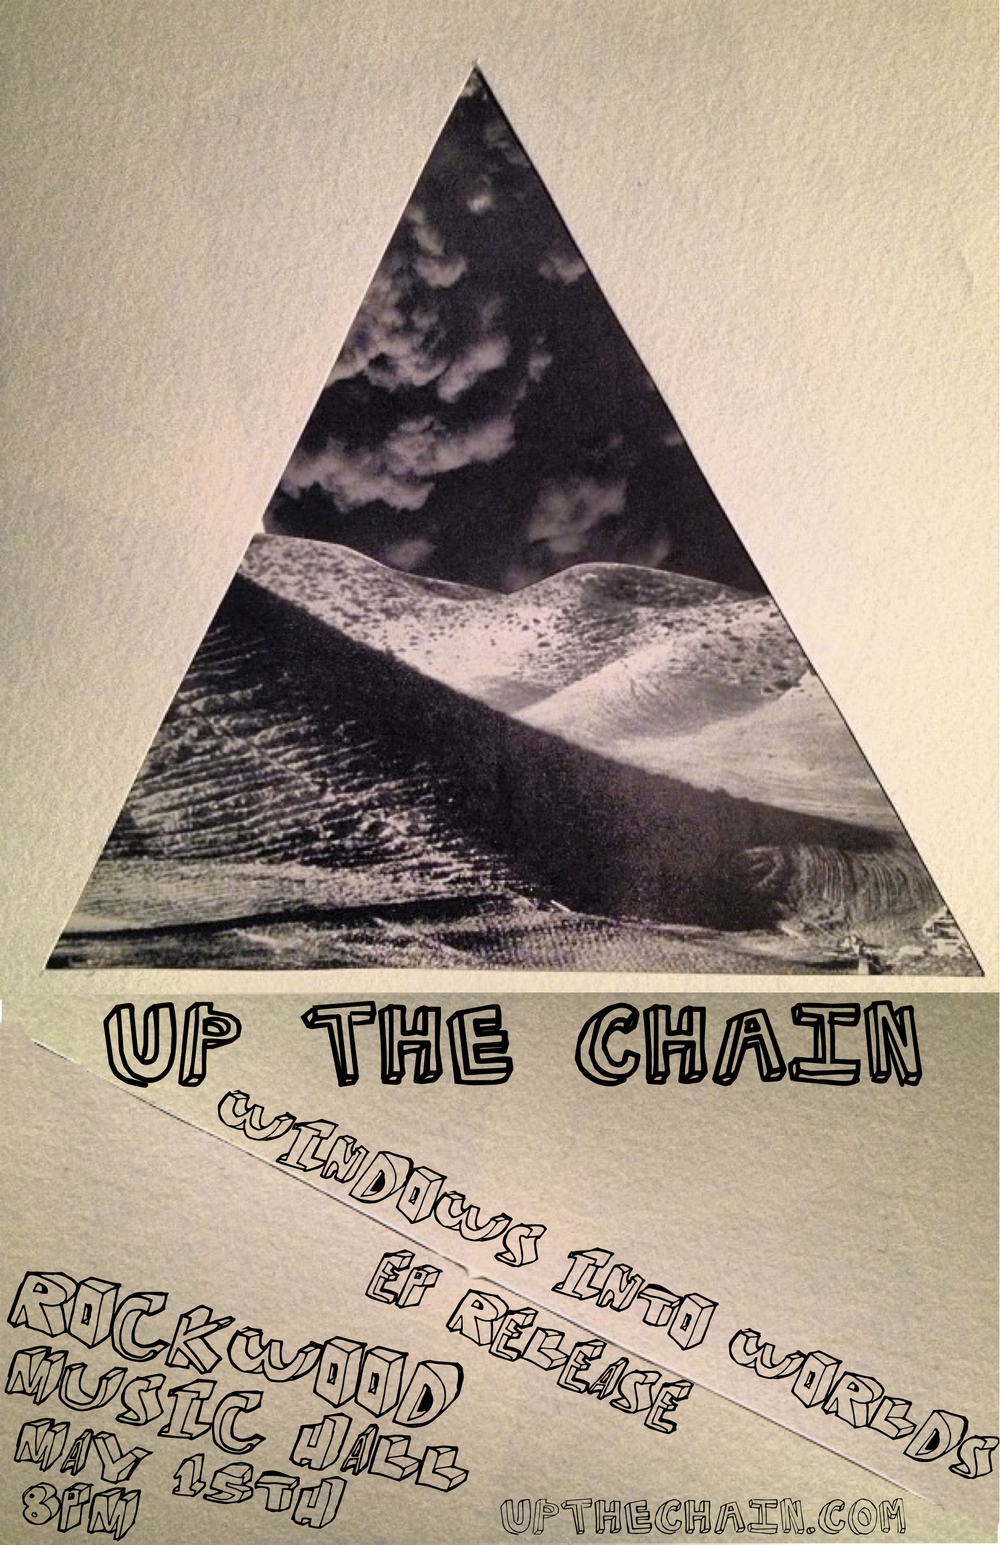 Up the Chain Record release